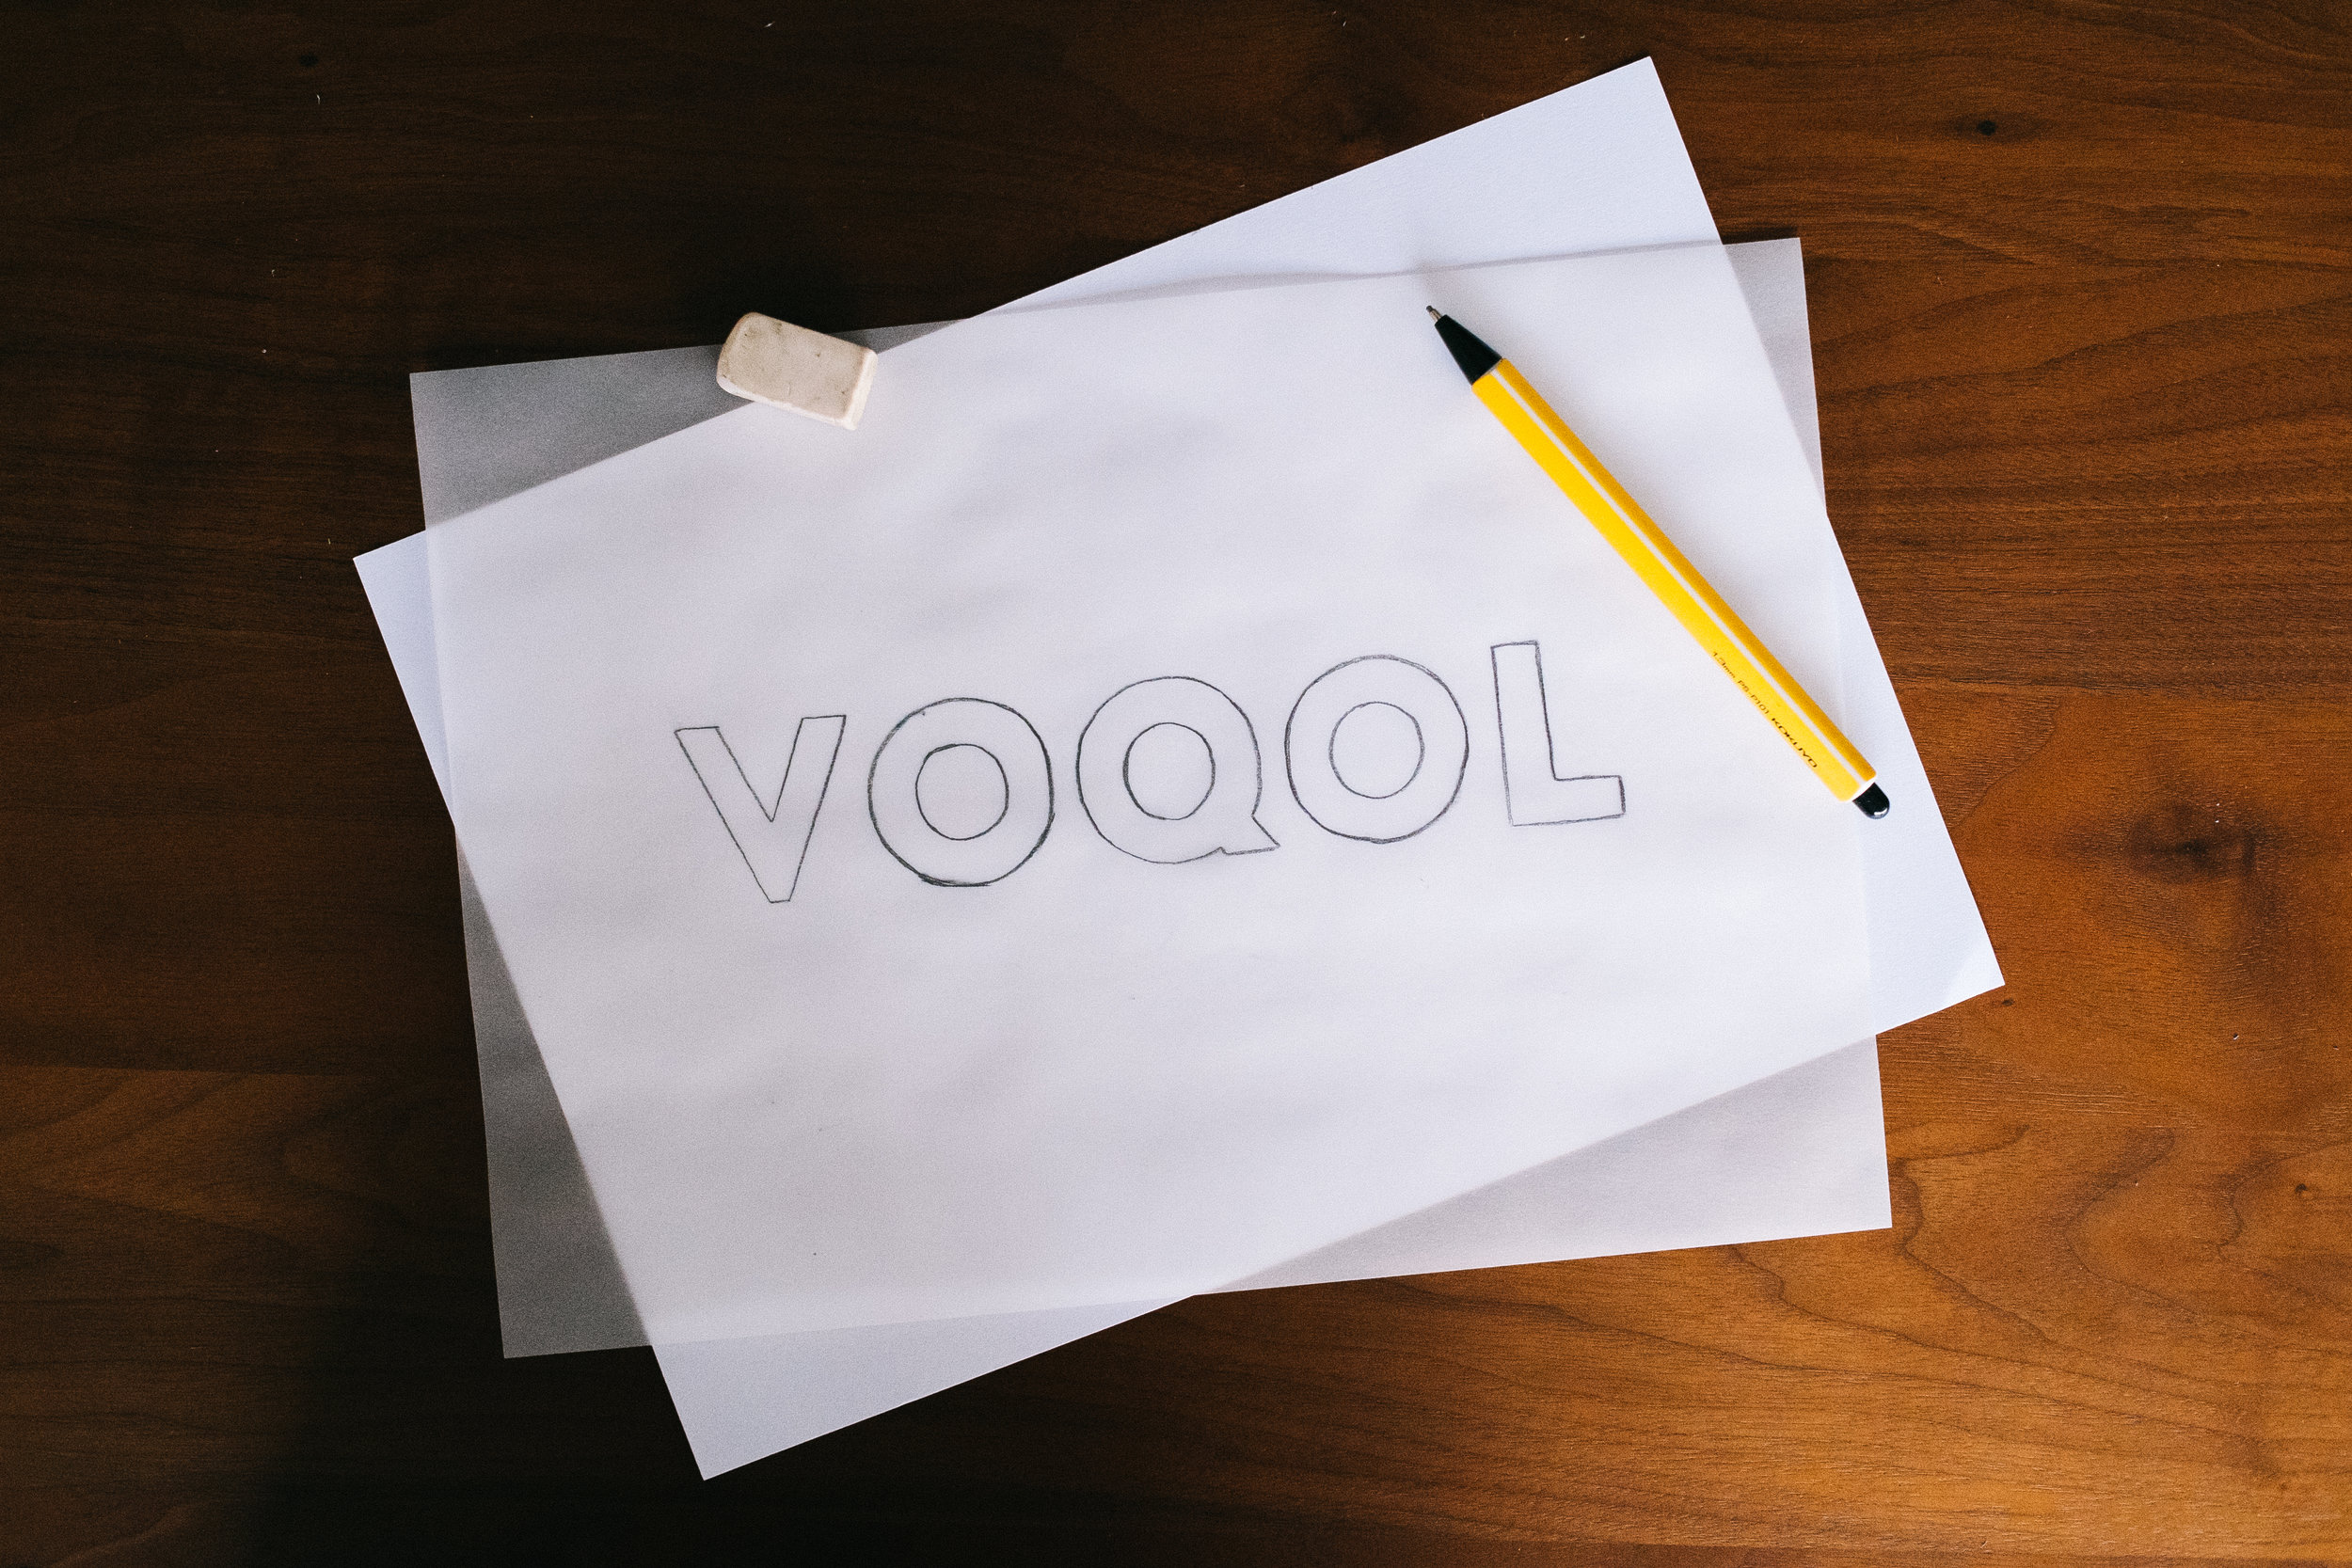 """VOQOL is a wordplay on """"vocal"""" and """"QOL"""" which means, """"Quality of Life"""" ©Joel Tay 2016"""